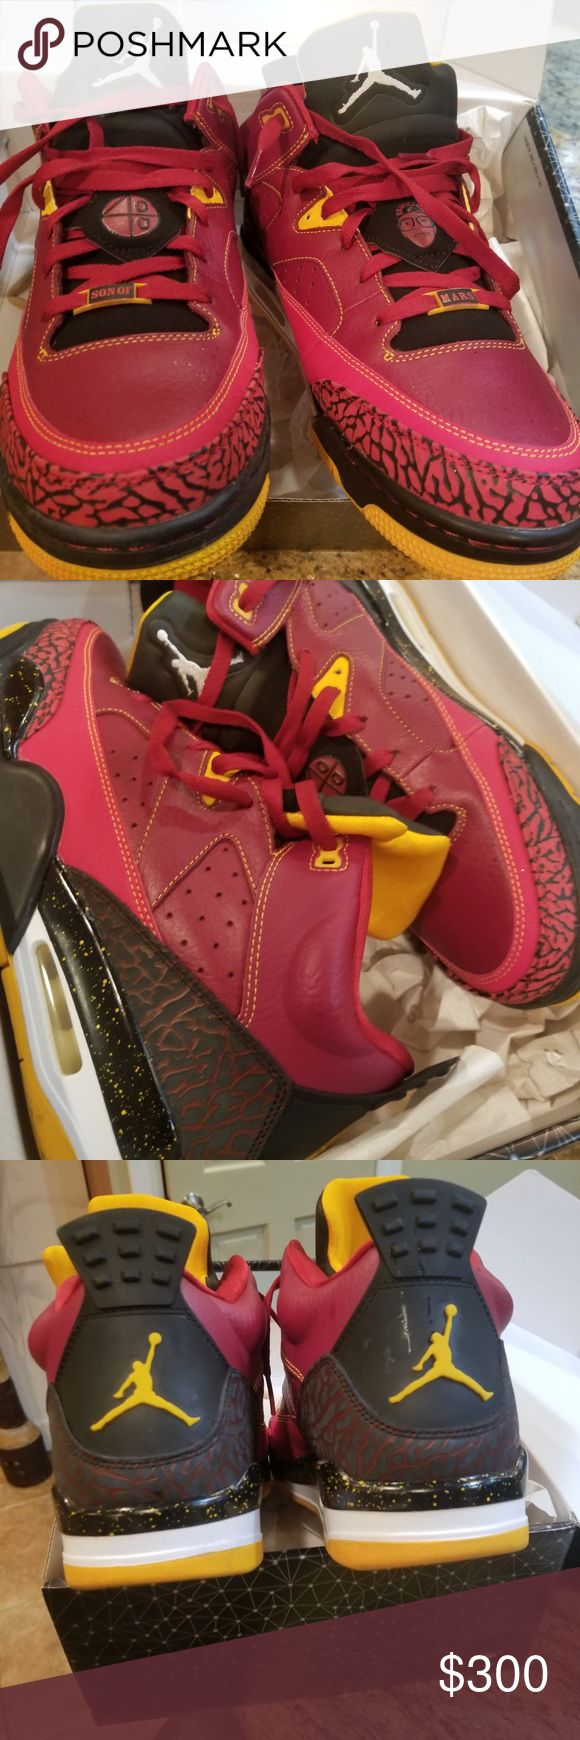 New Spike Lee Jordan's Size 11, Red,black,yellow. With Box Nike Shoes Sneakers